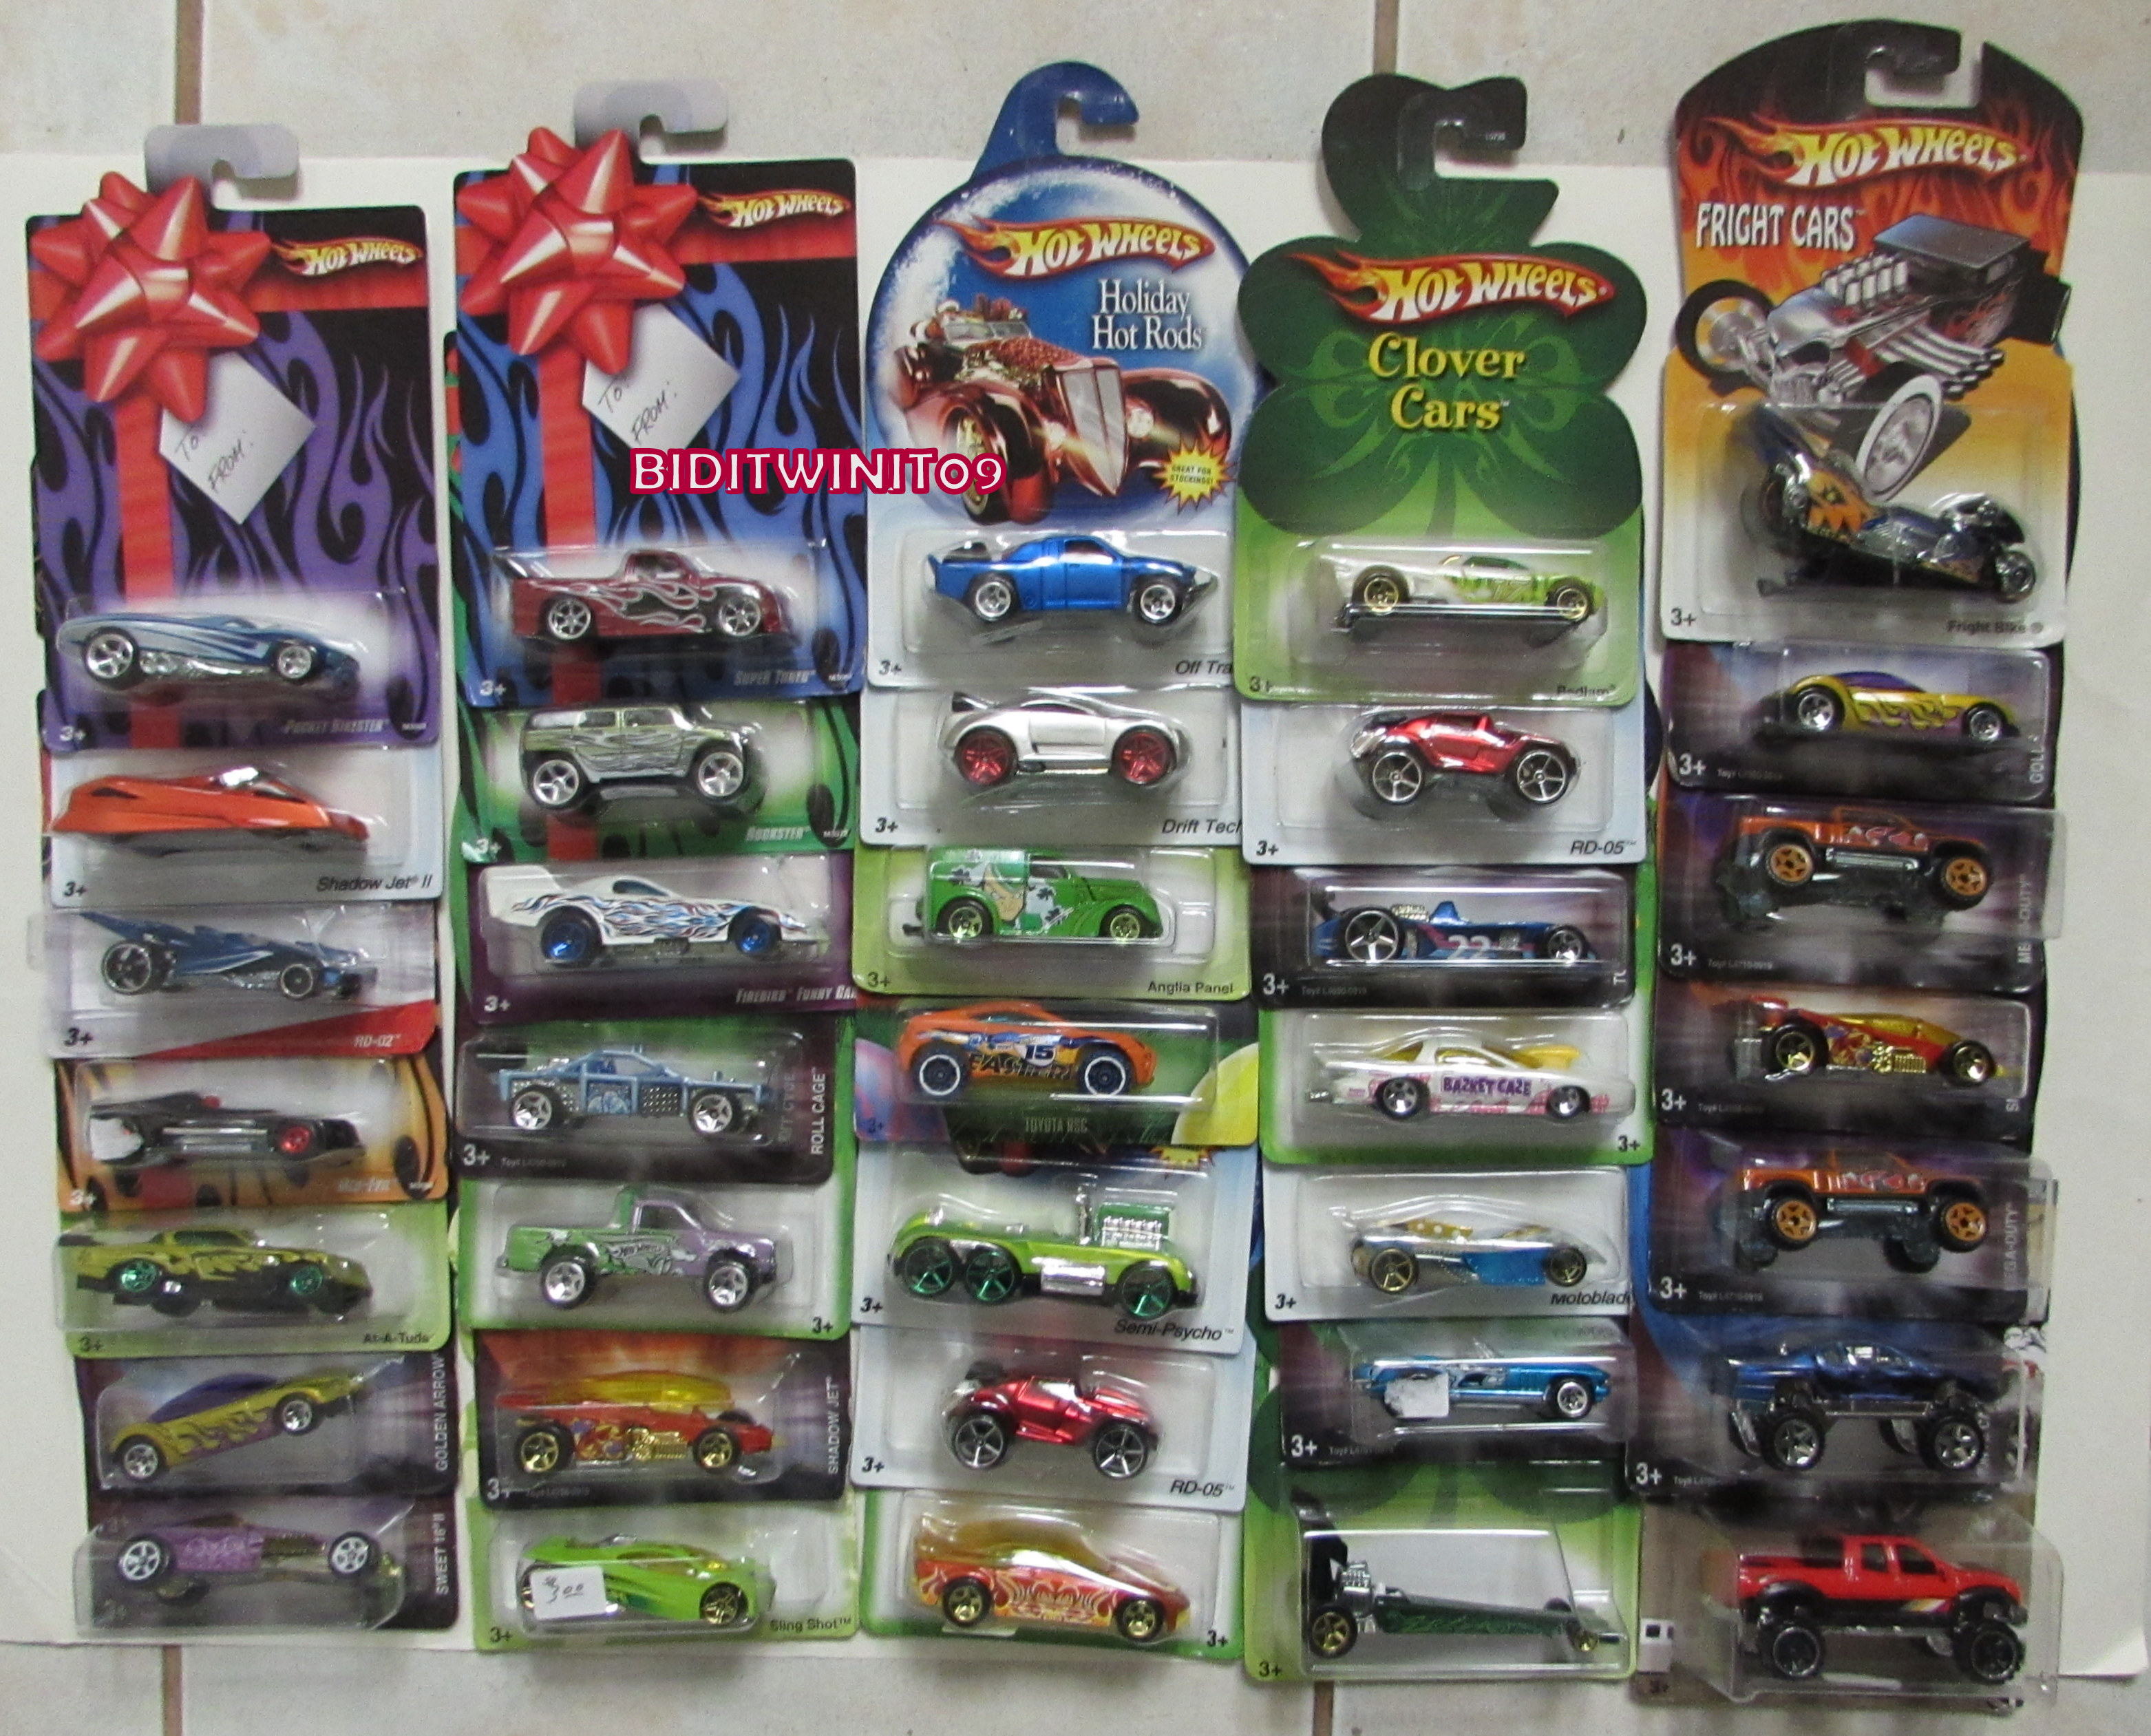 HOT WHEELS CLOVER CARS FRIGHT CARS HOLIDAY RODS LOT OF 28 PCS E+